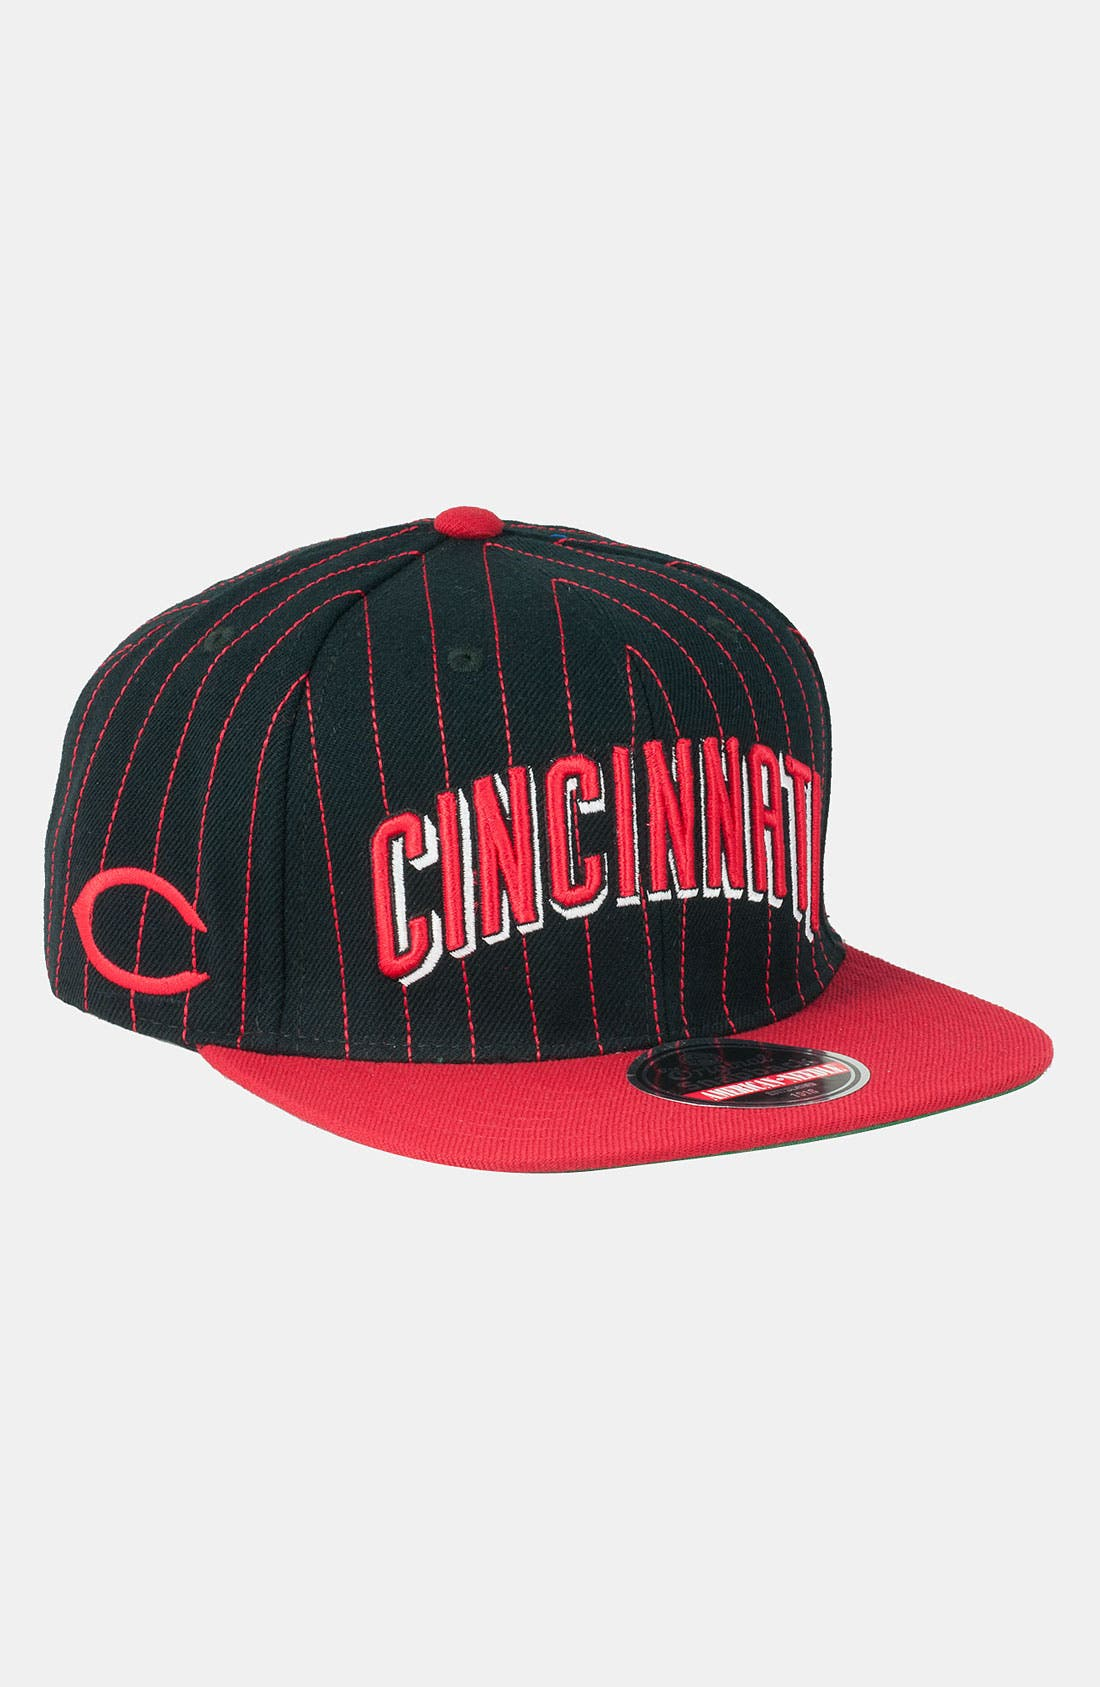 Alternate Image 1 Selected - American Needle 'Reds' Snapback Baseball Cap